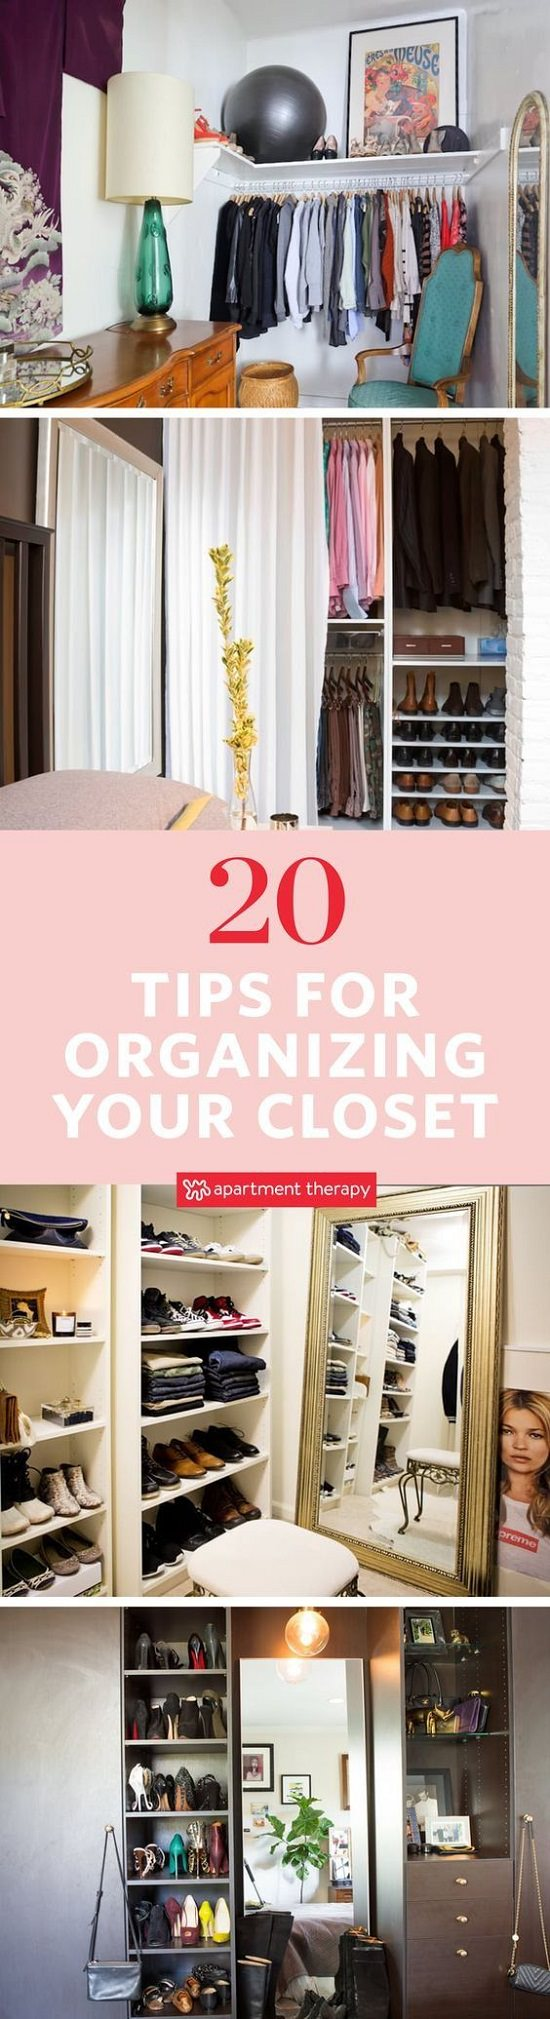 These Simple Tips And Tricks Will Help You Organize Your Closet And Create  Some Extra Space